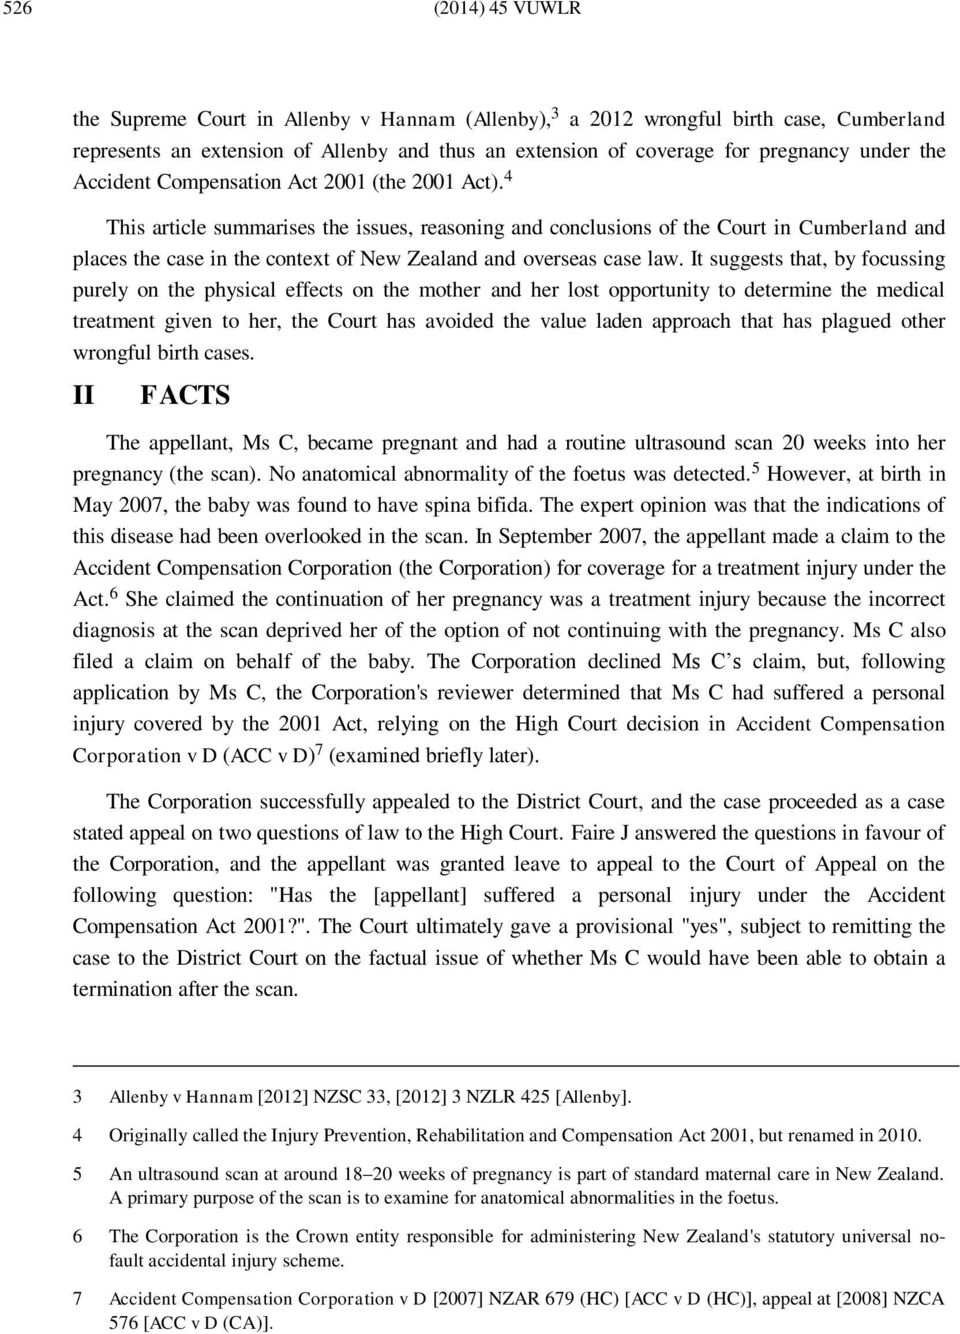 4 This article summarises the issues, reasoning and conclusions of the Court in Cumberland and places the case in the context of New Zealand and overseas case law.